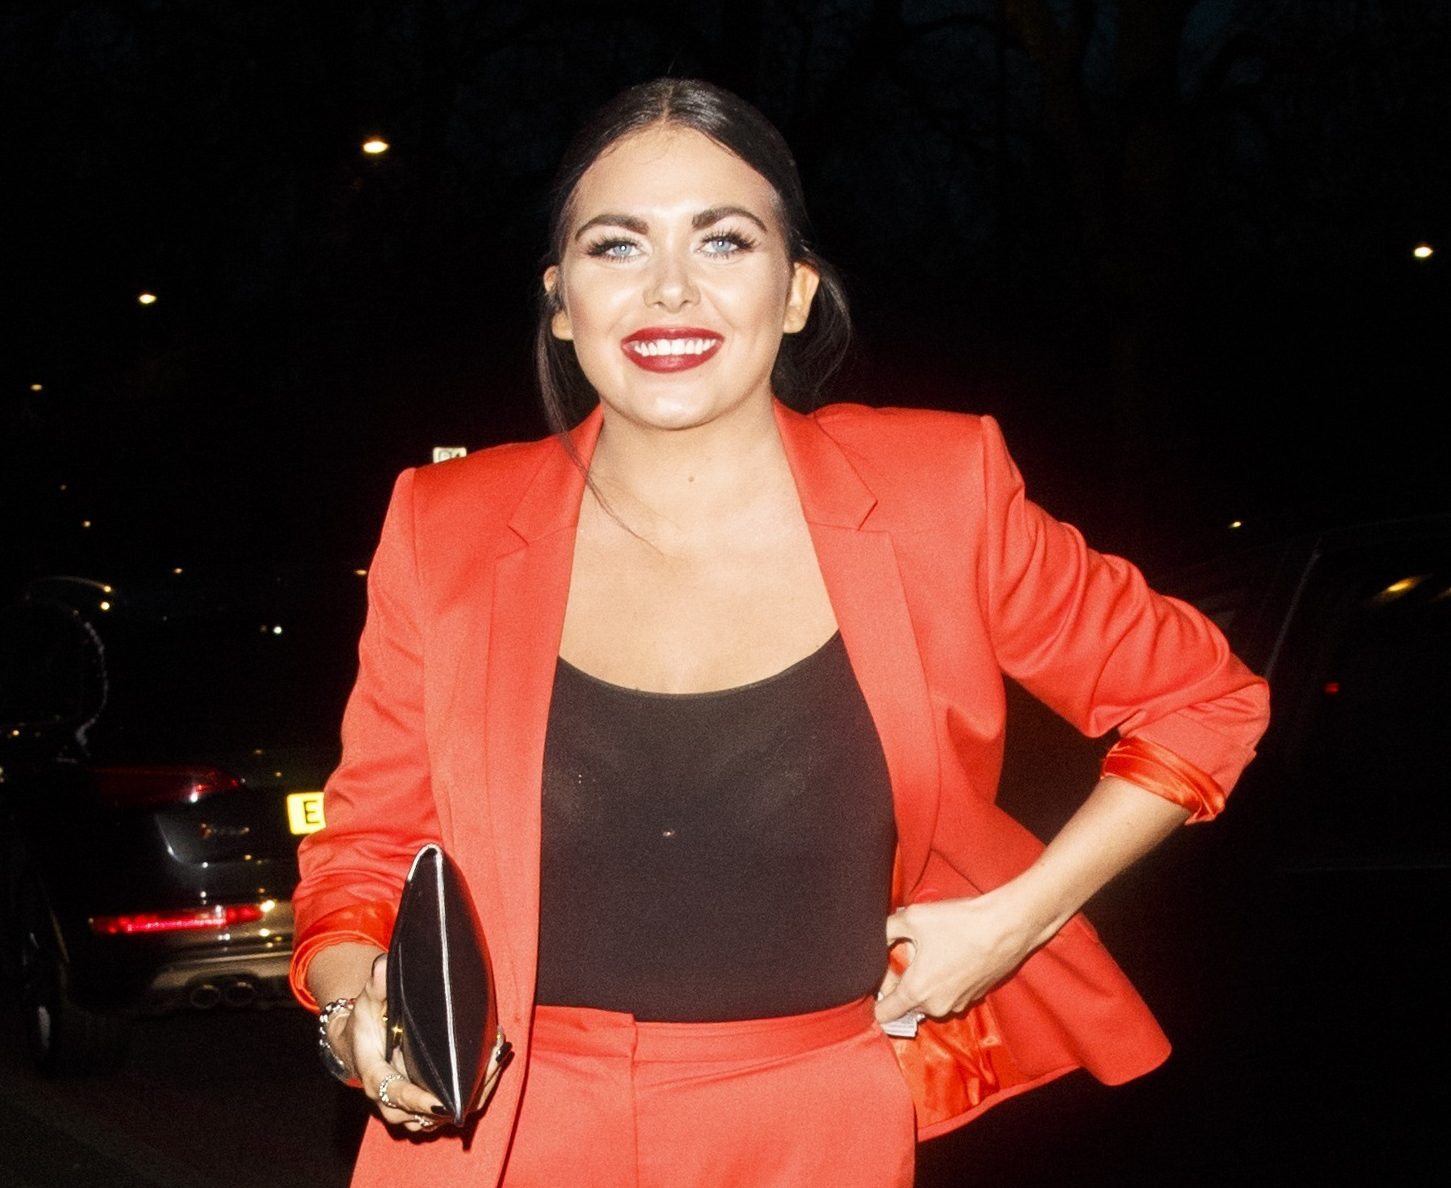 Scarlett Moffatt to go on Strictly Come Dancing?